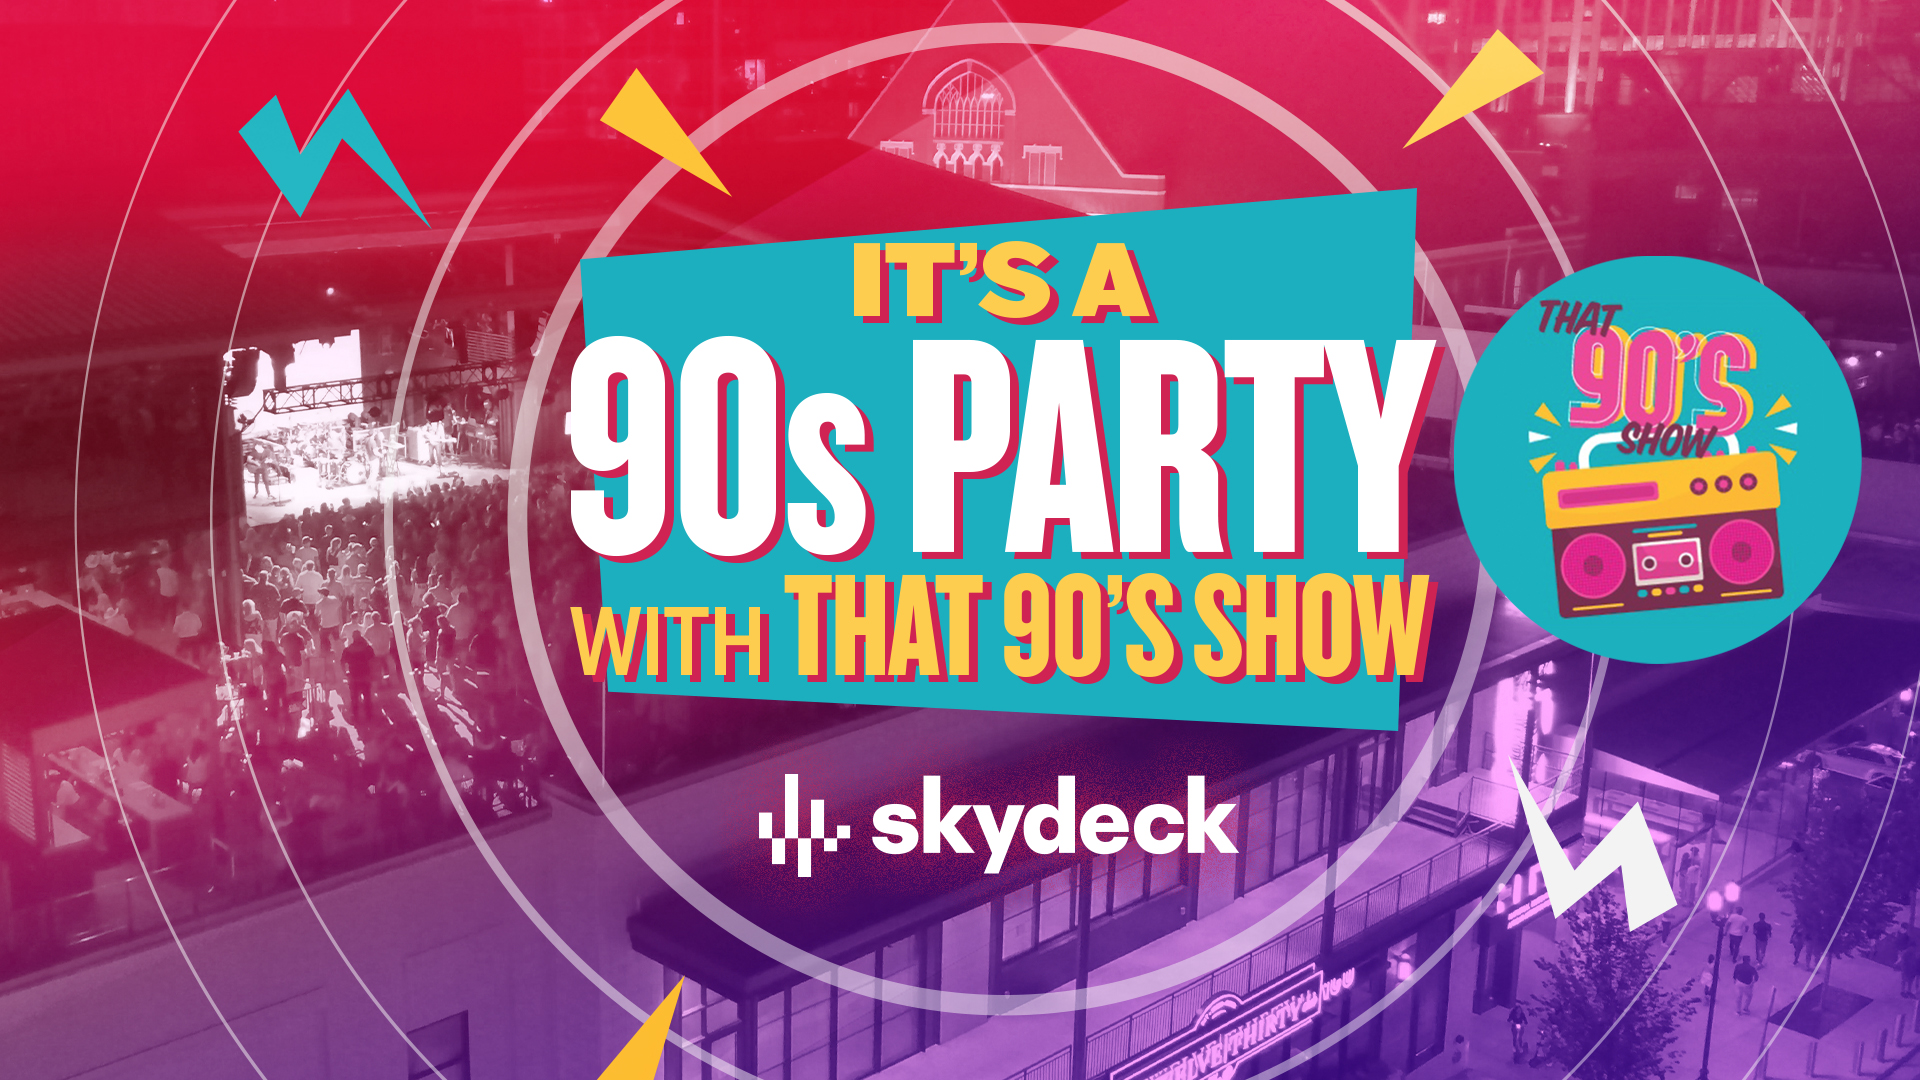 Promo image of That 90s Show on Skydeck